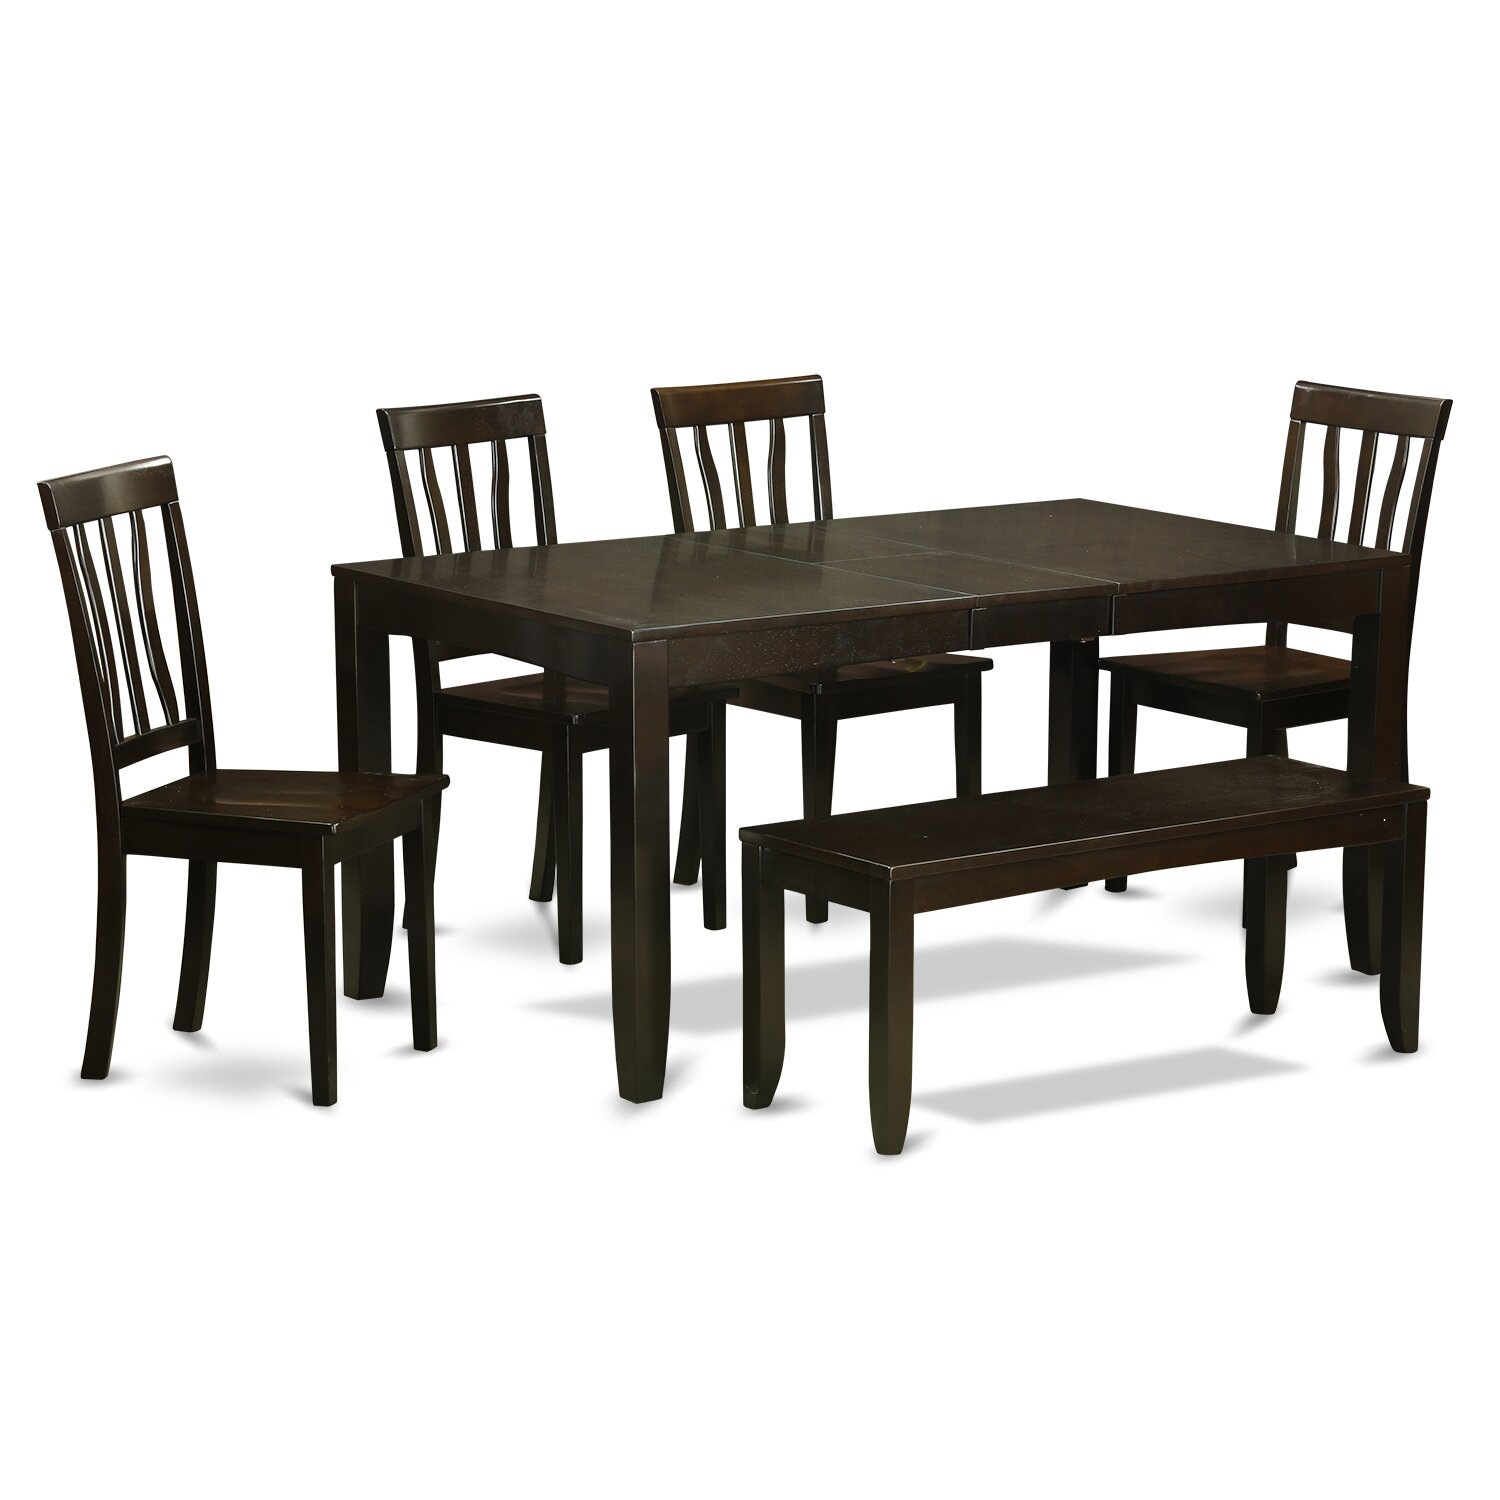 Kitchen Table With 6 Chairs: Wooden Importers Lynfield 6 Piece Dining Set